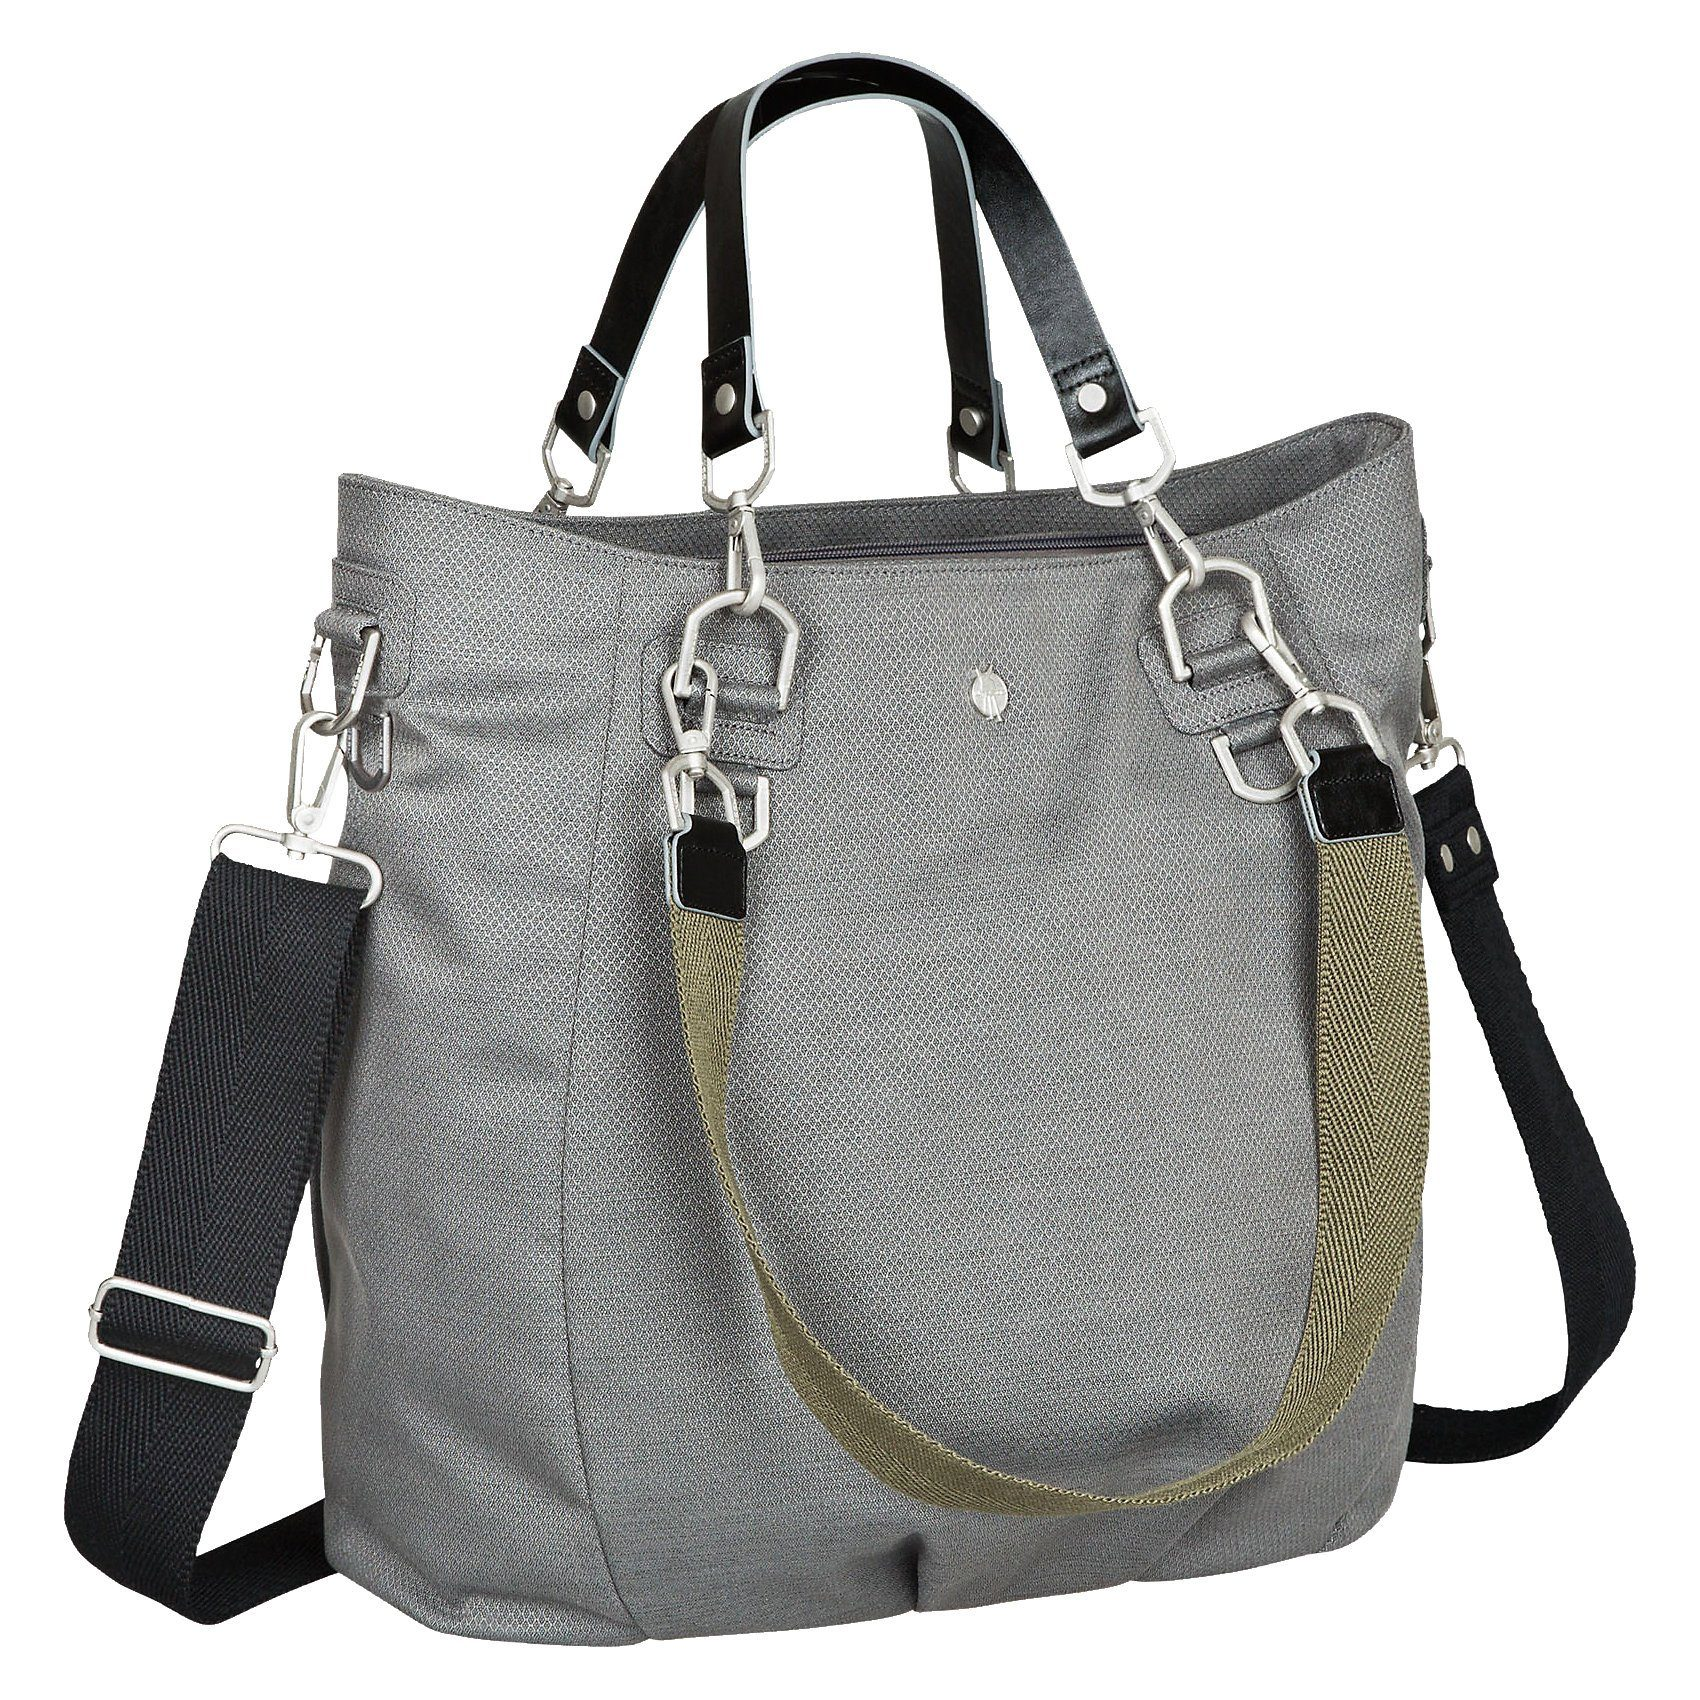 Lässig Wickeltasche Greenlabel, Mix´n Match Bag, Anthracite